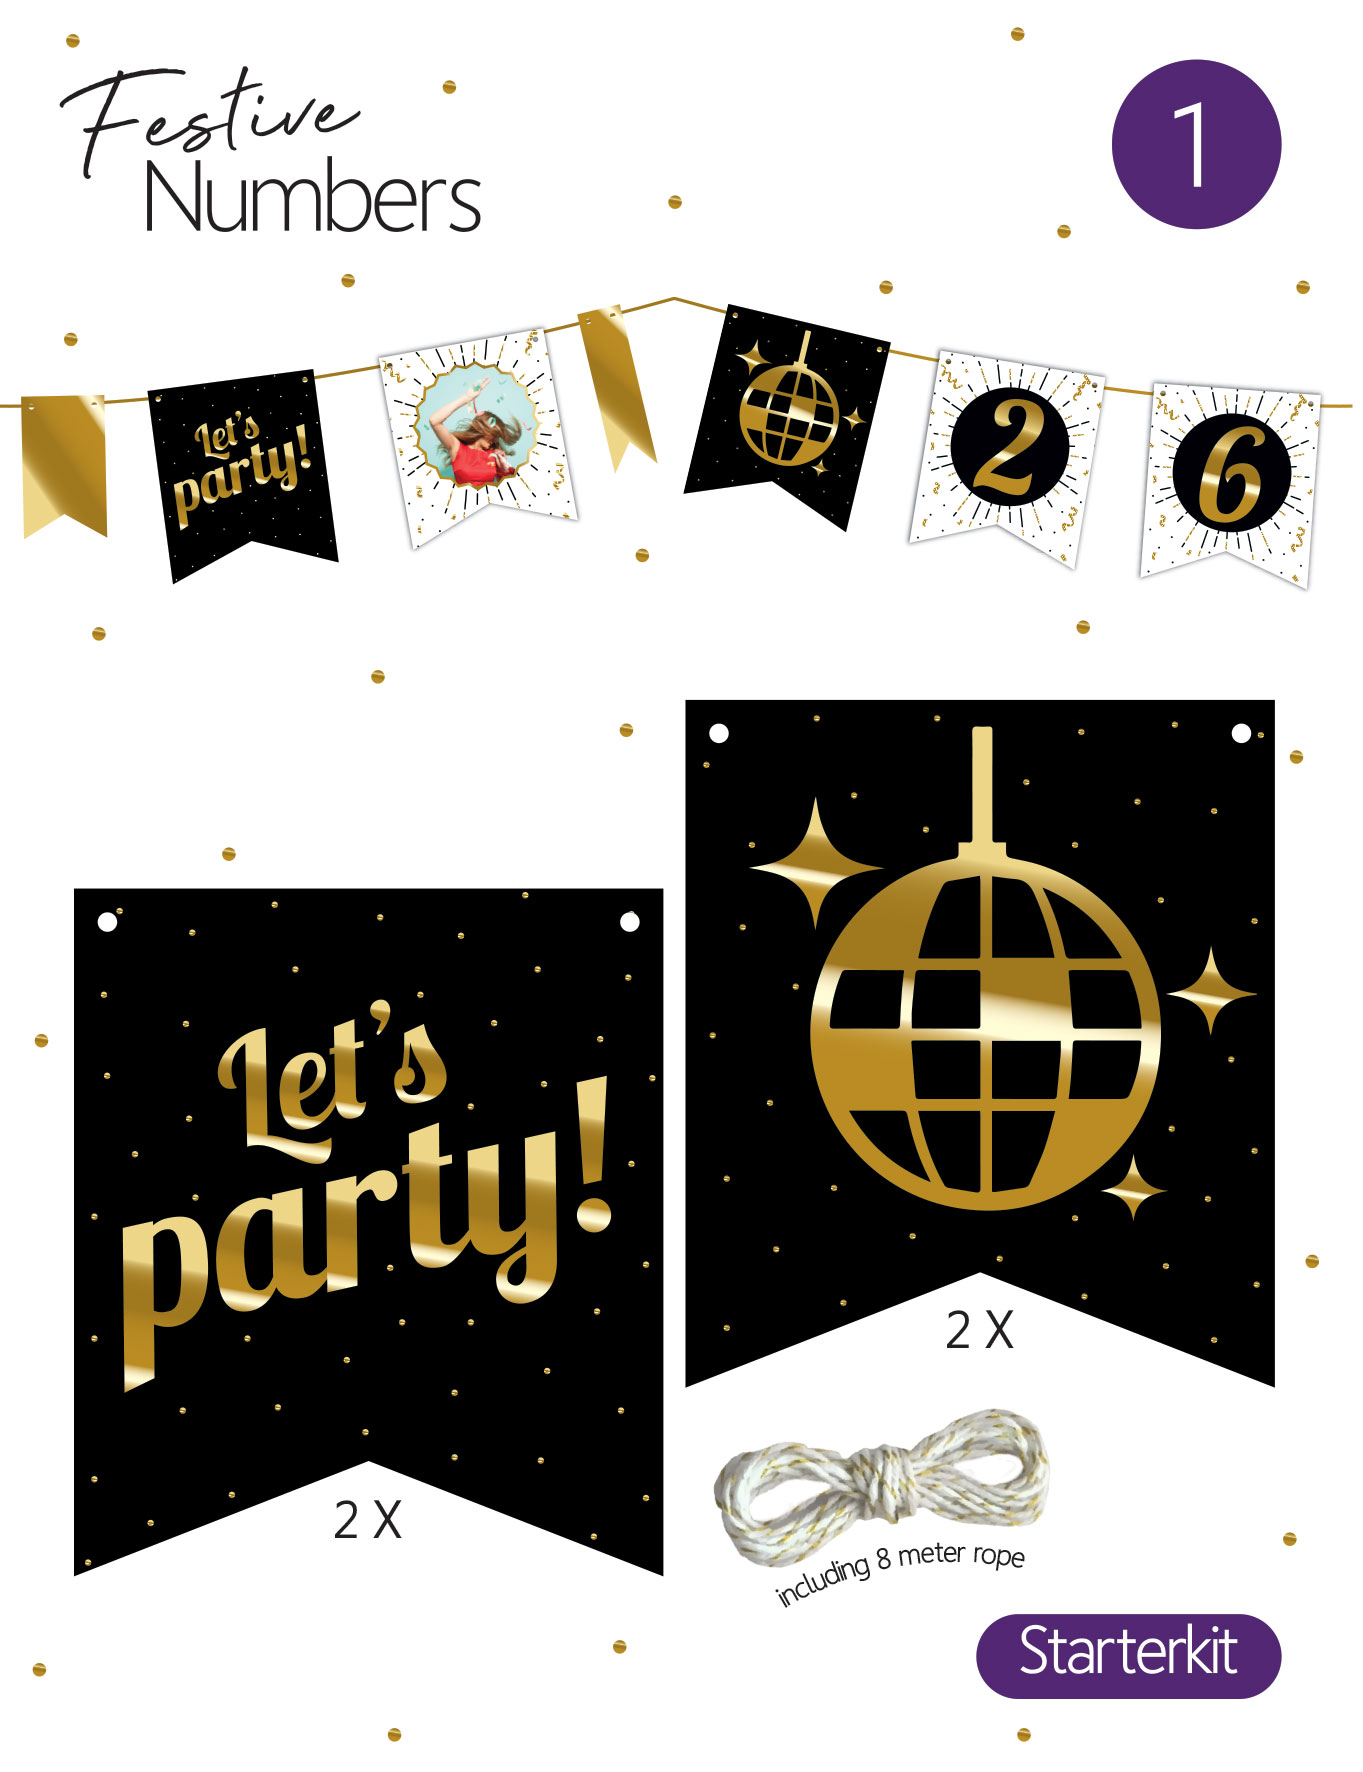 festive numbers kit let's party